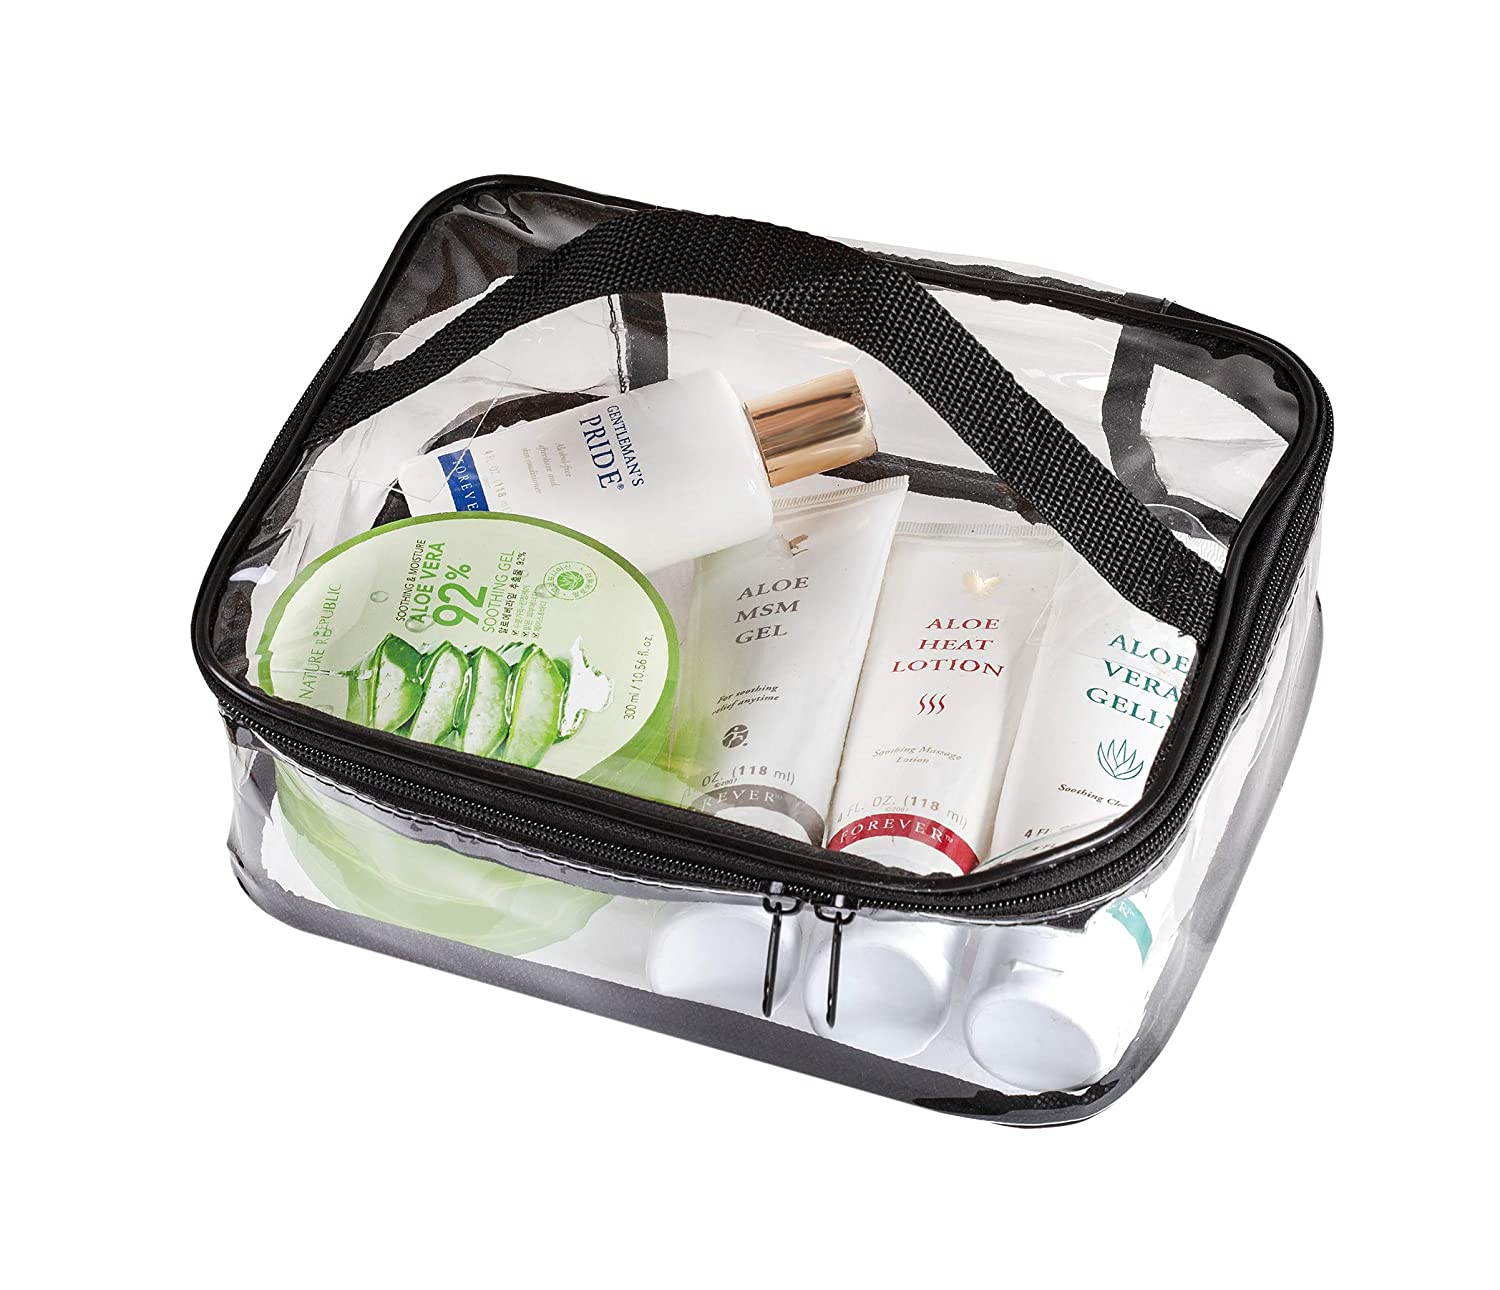 Clear Travel Cosmetic Bag Makeup Pouch, Train Case Organizer with Top Handle Large